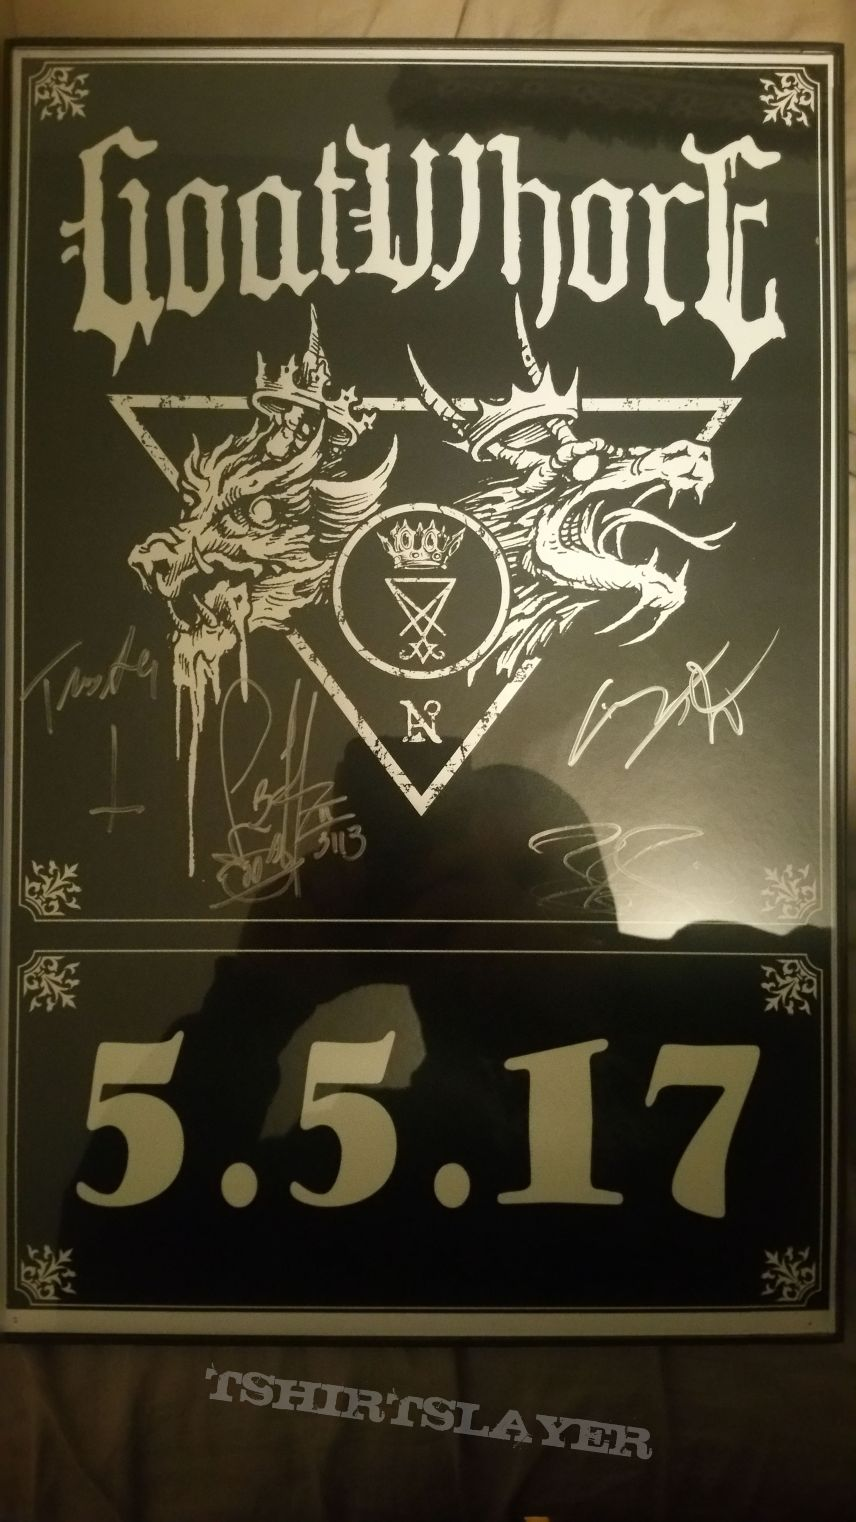 Goatwhore Signed show poster